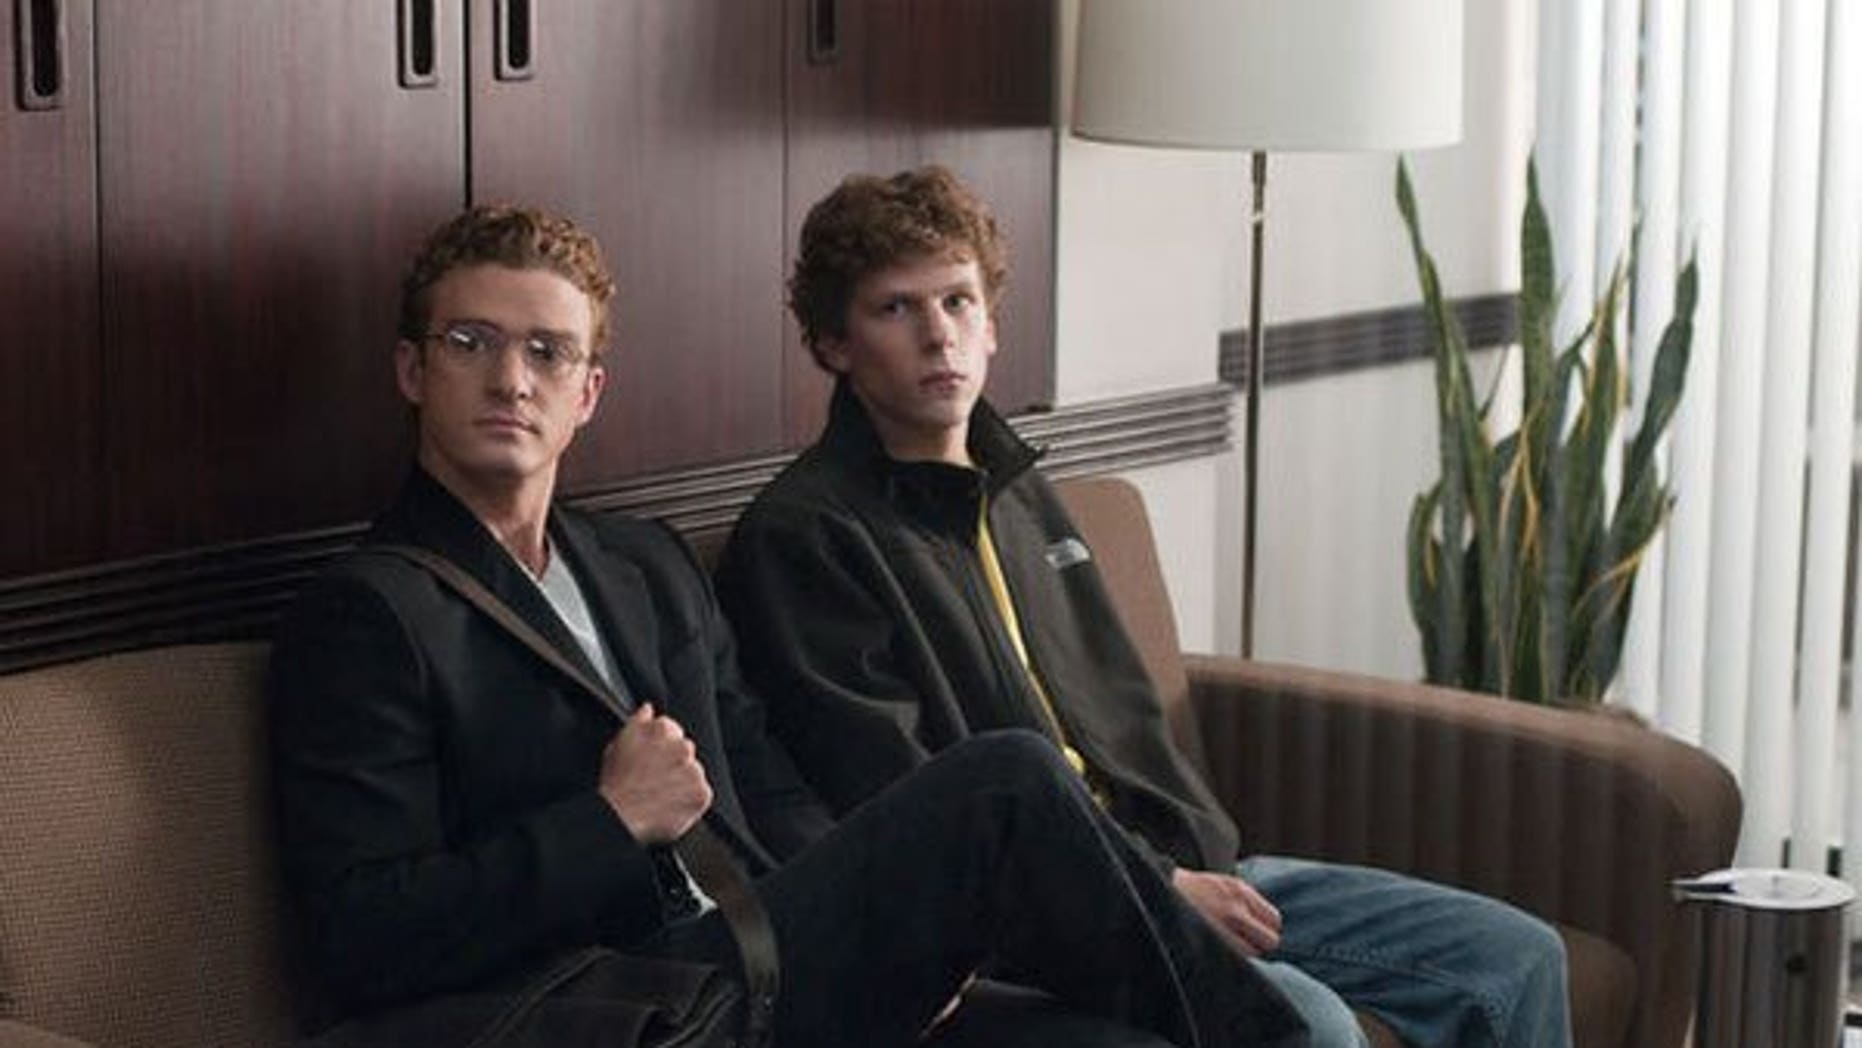 Justin Timberlake and Jesse Eisenberg in 'The Social Nework.' (Columbia)